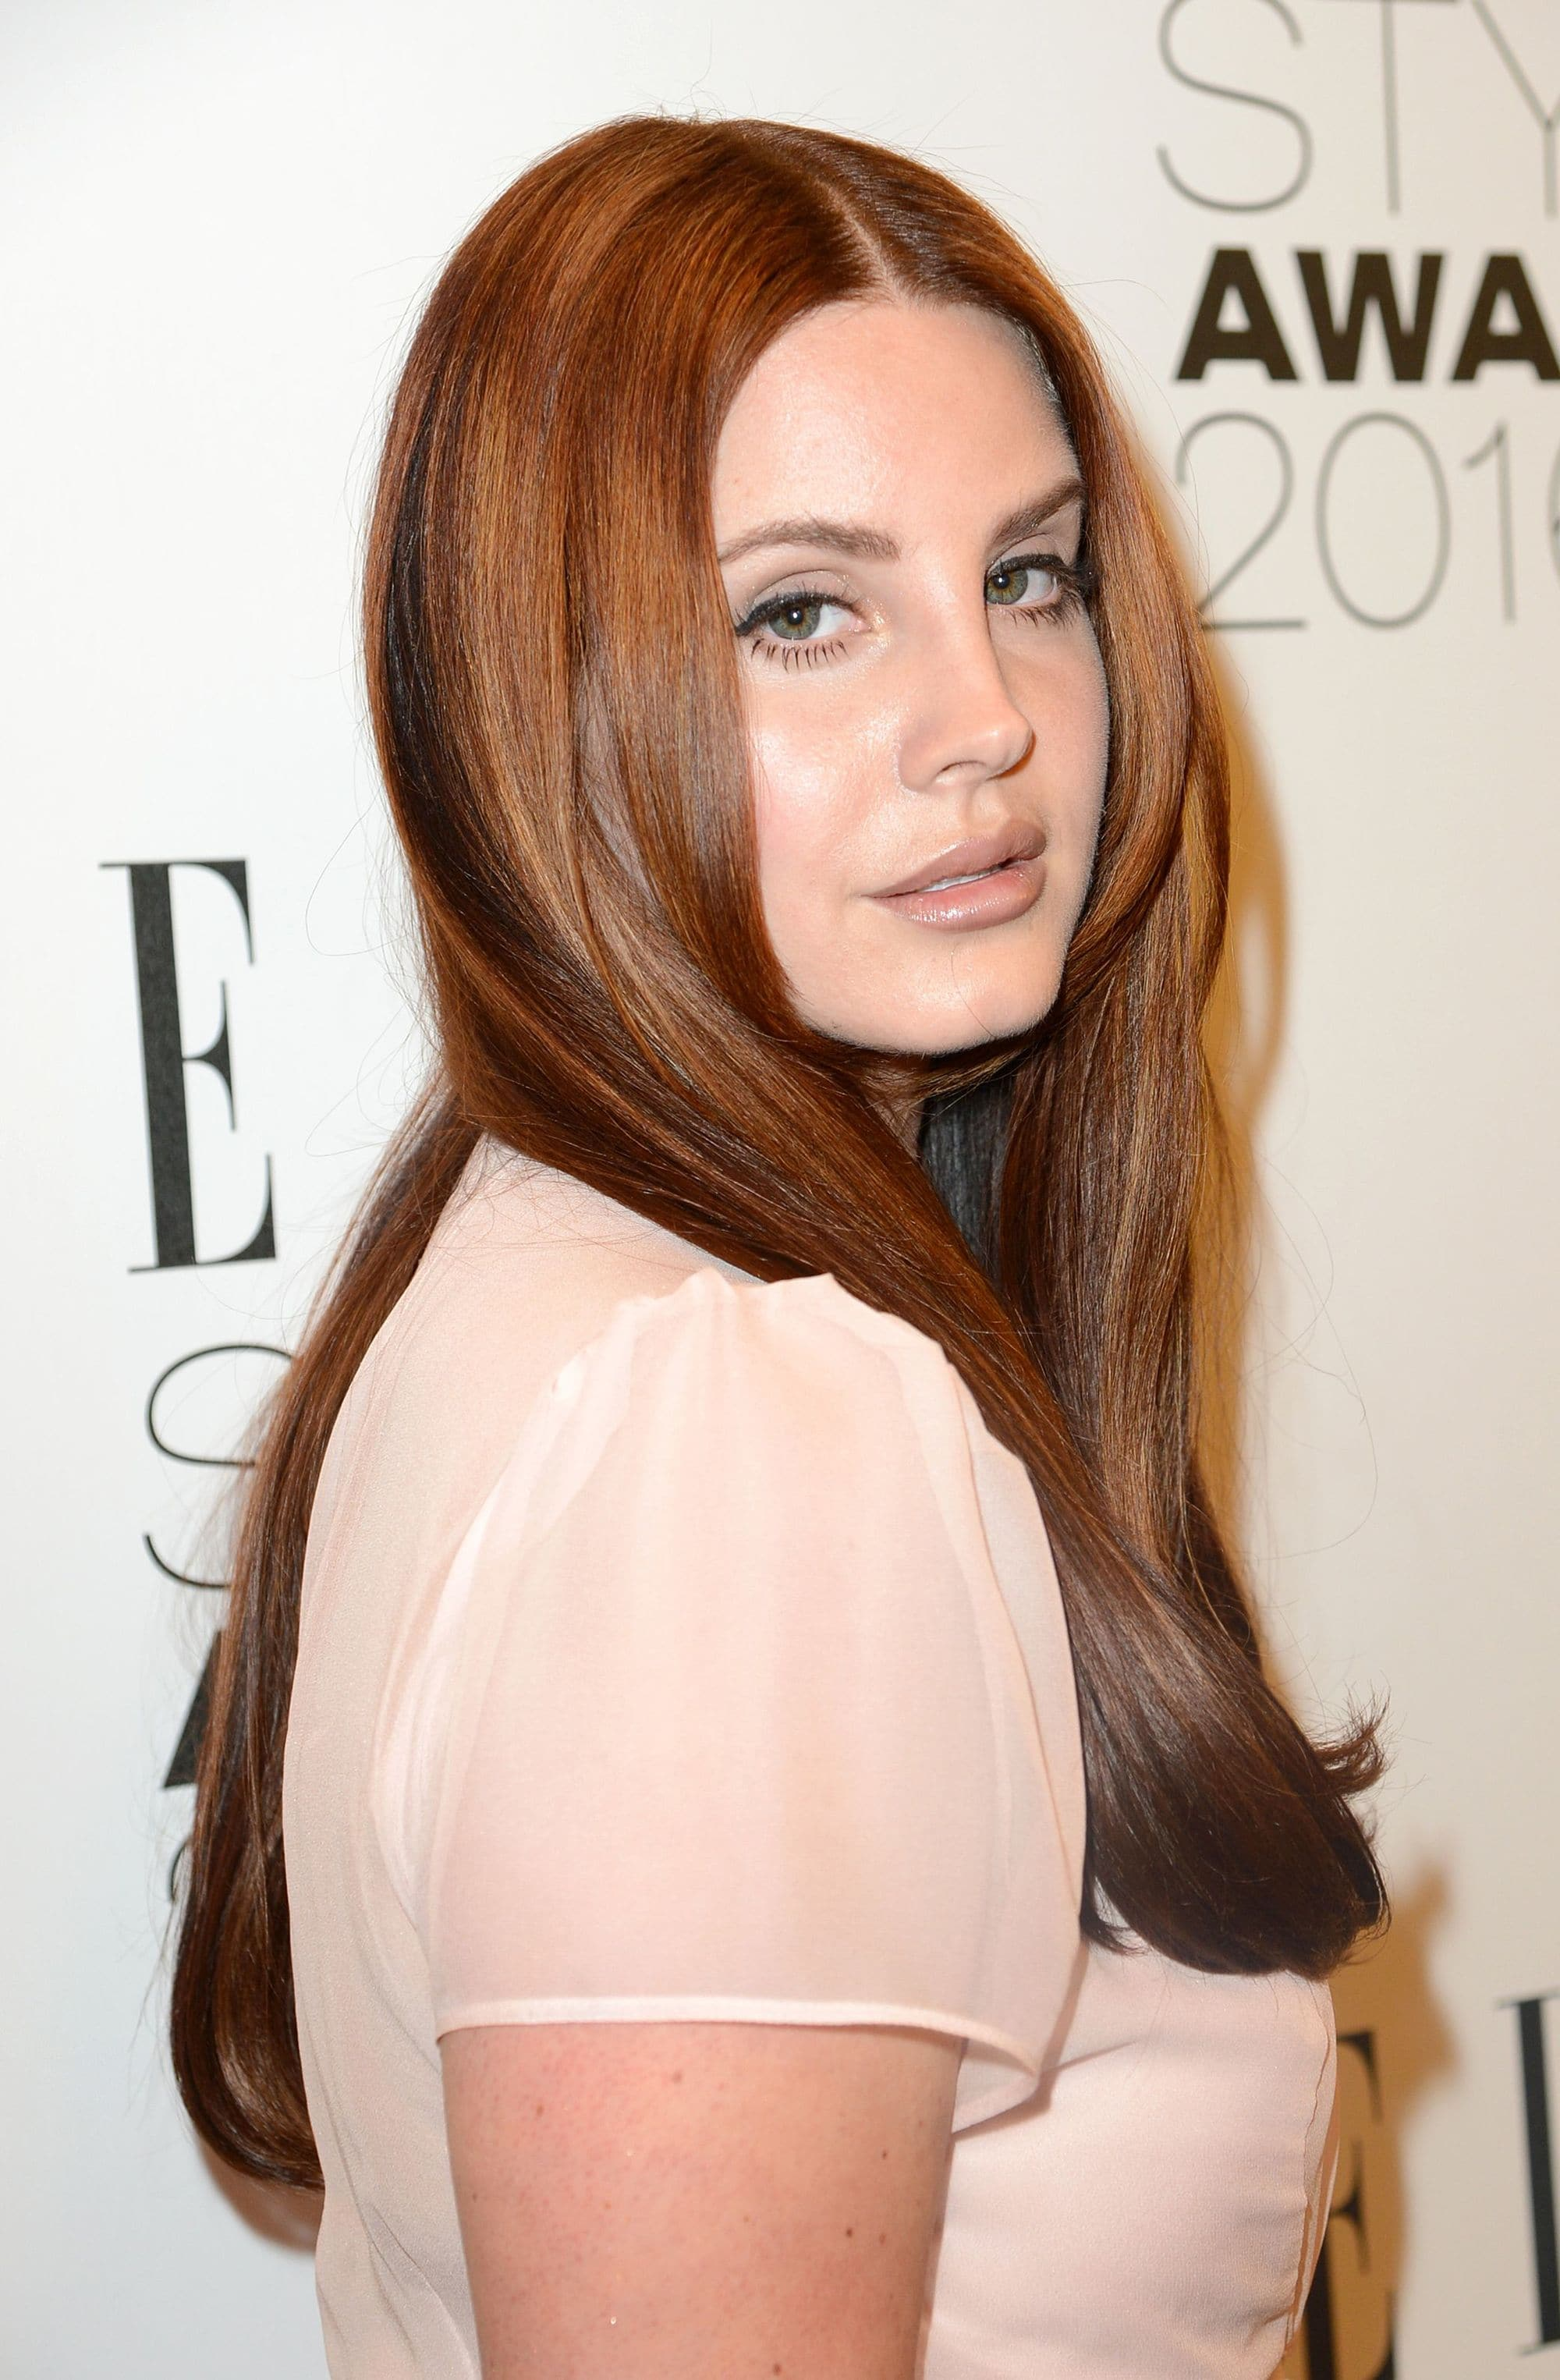 chocolate hair: Lana del rey with bronze chocolate hair colour